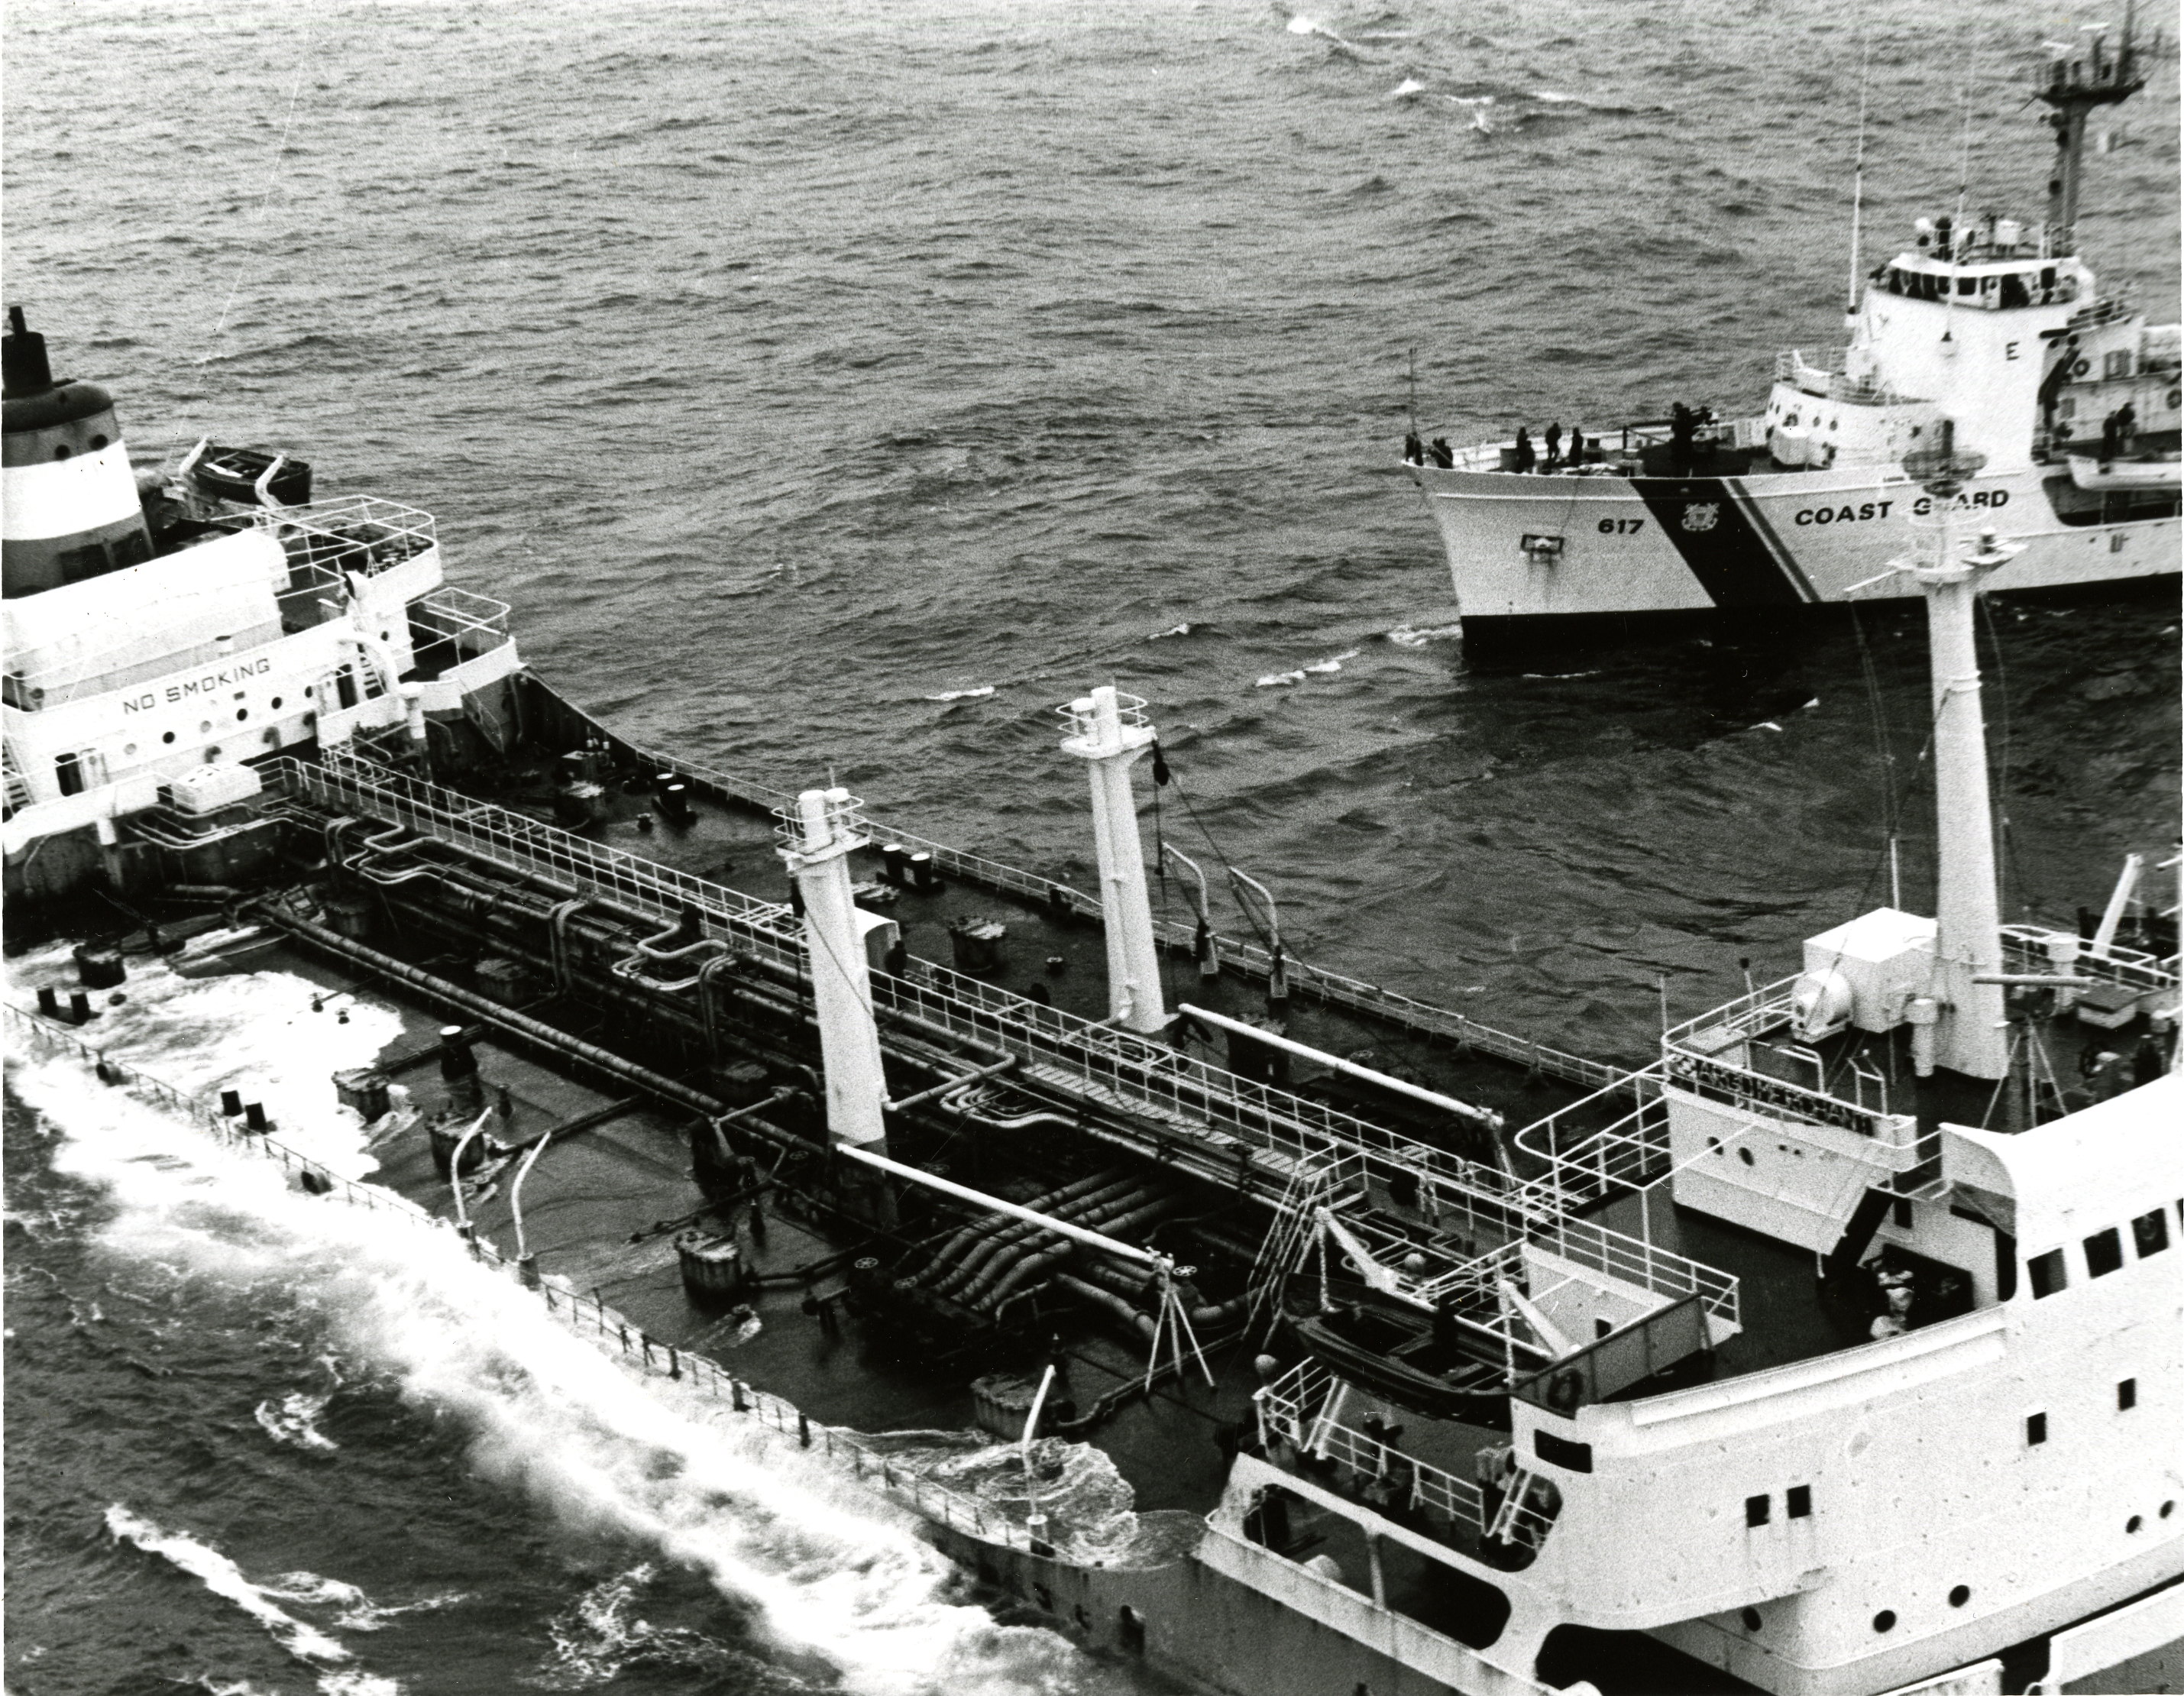 A Coast Guard vessel near a foundering ship.